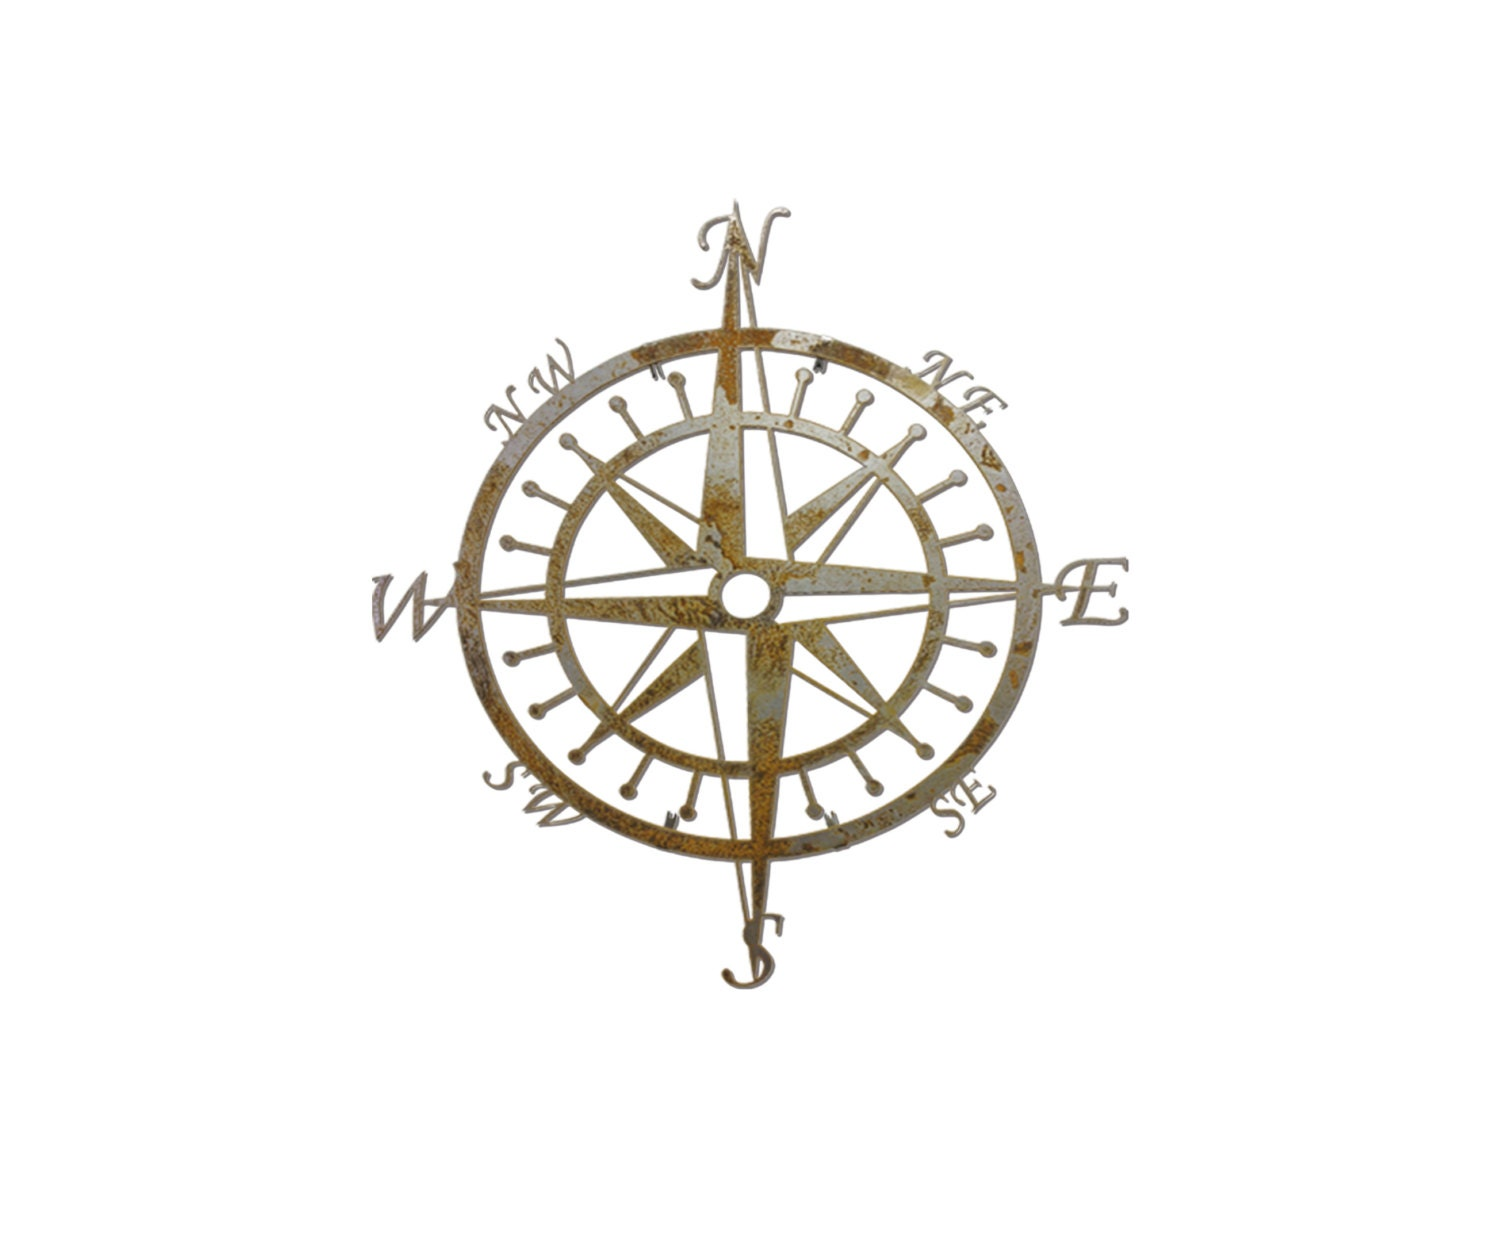 Vintage Compass Wall Decor : Vintage steel compass metal wall art